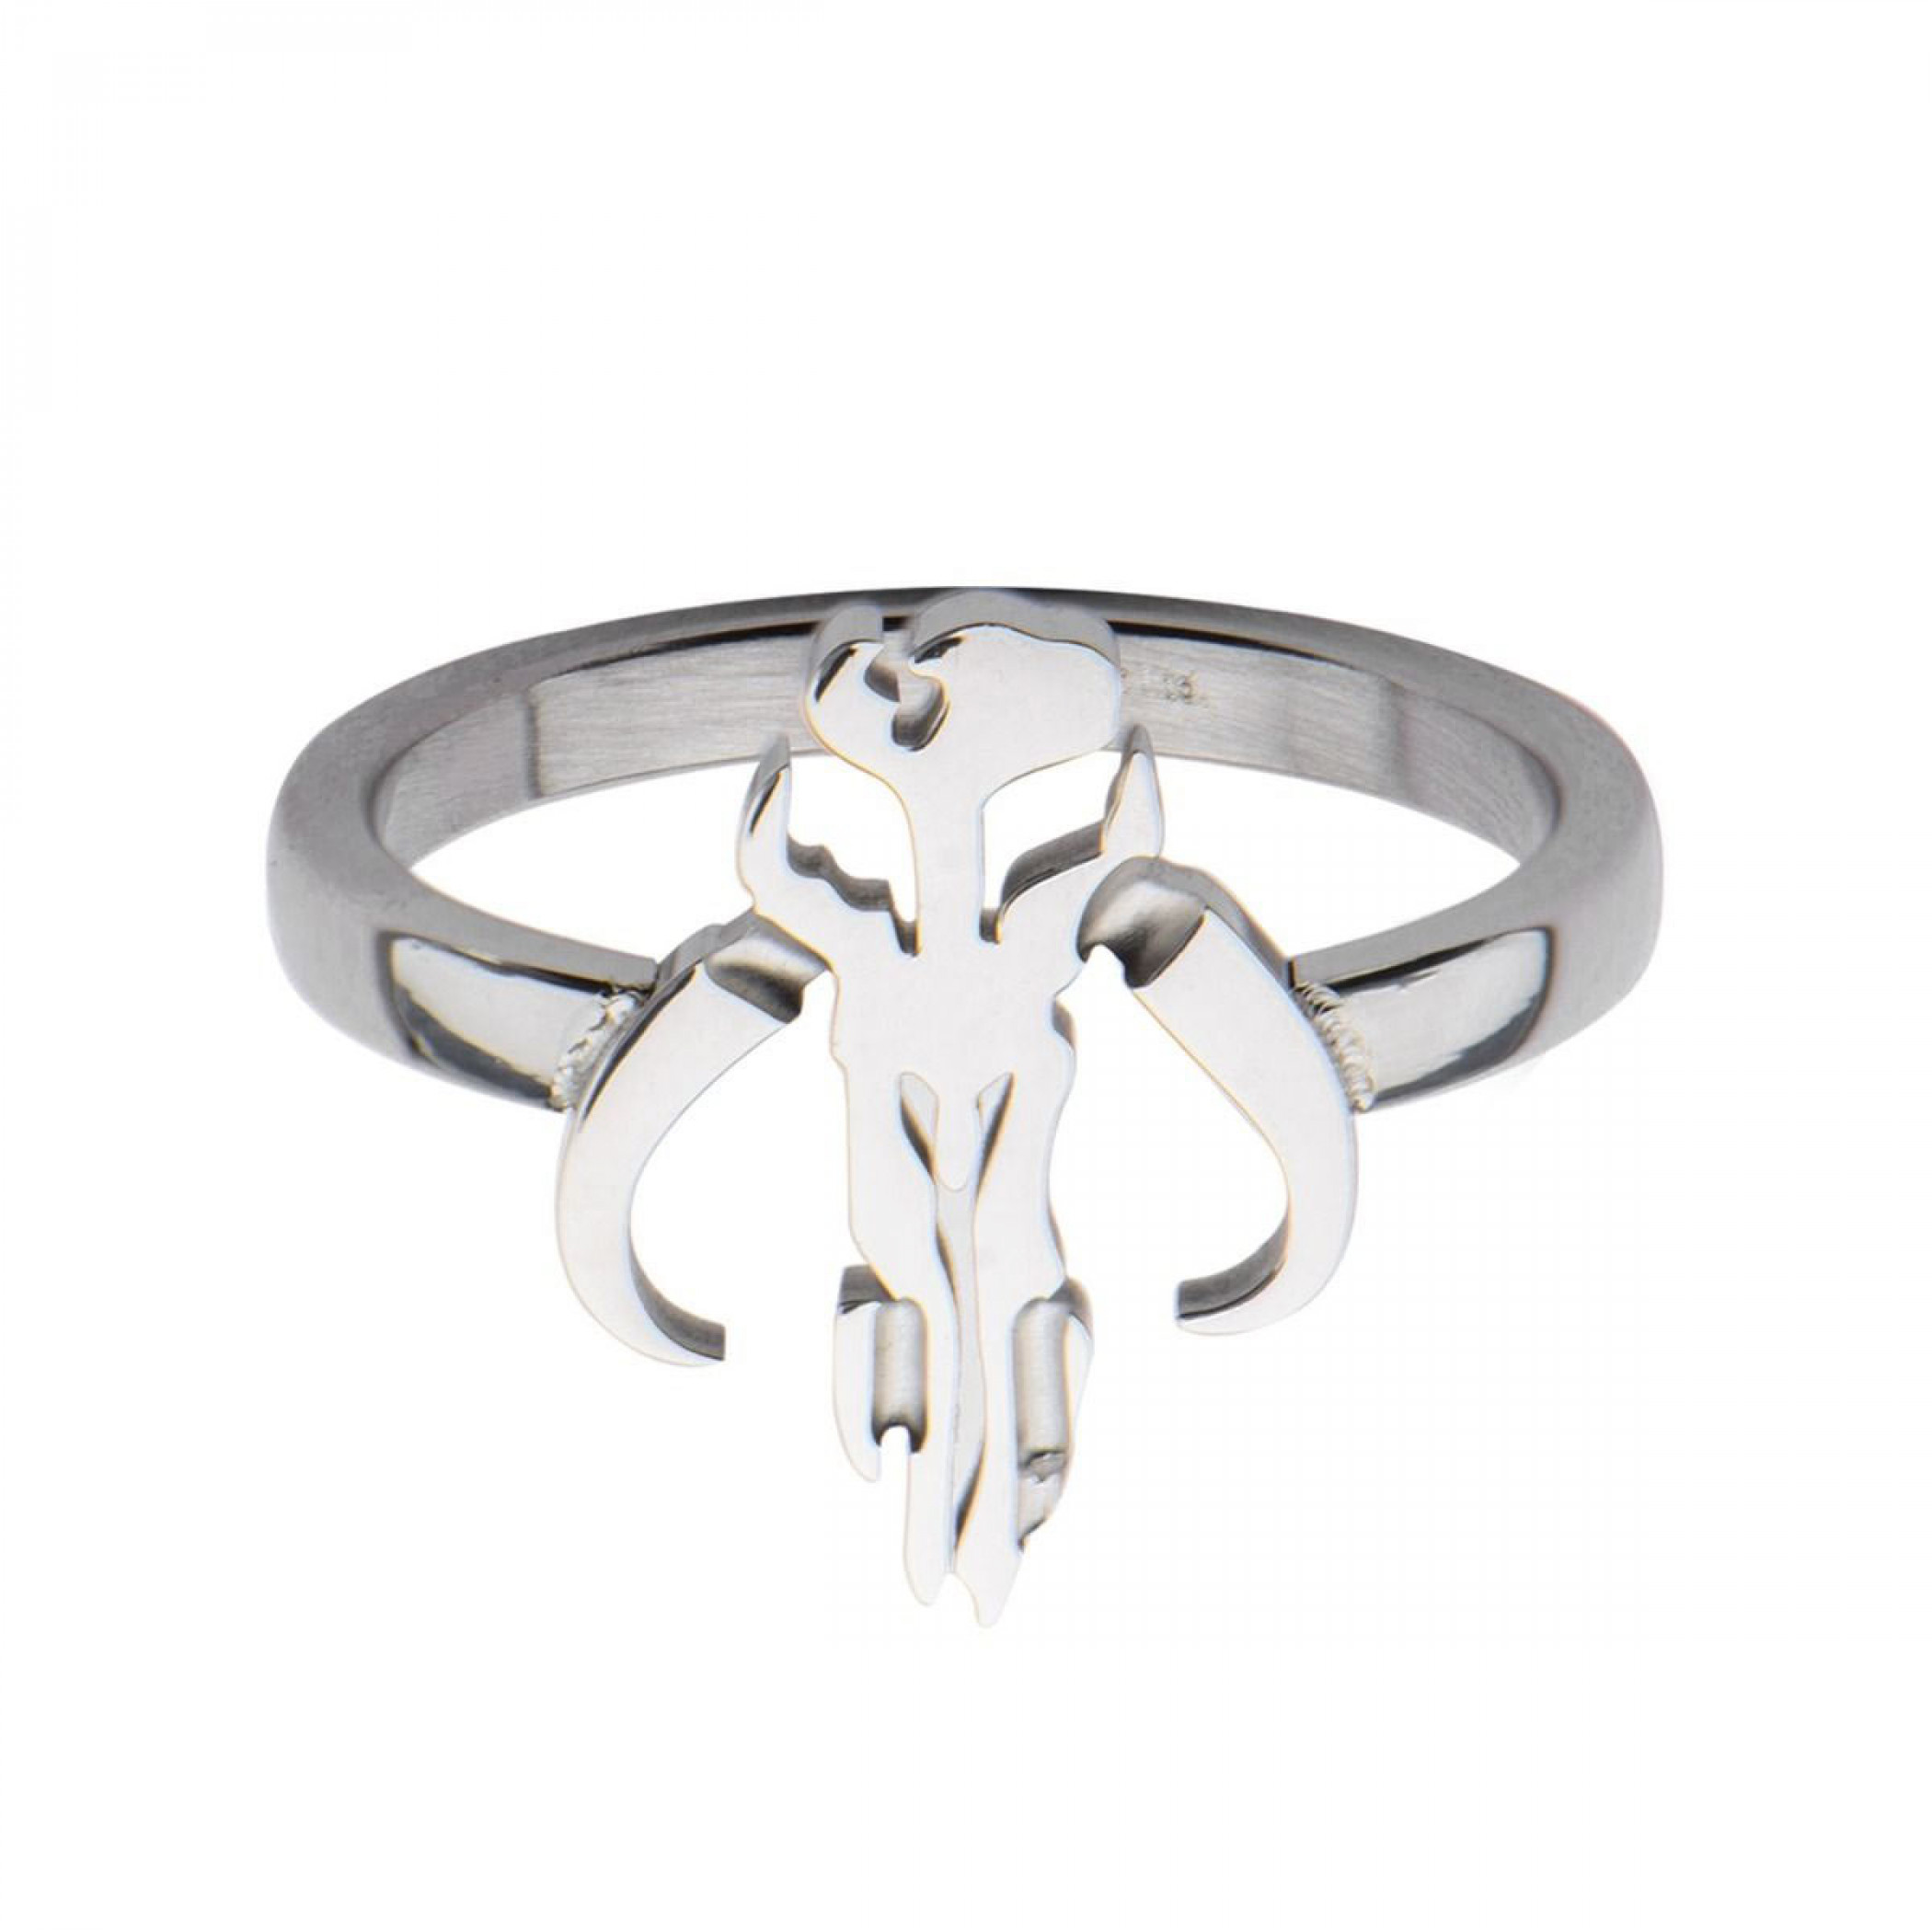 Star Wars Mandalorian Symbol Cut Out Petite Ring